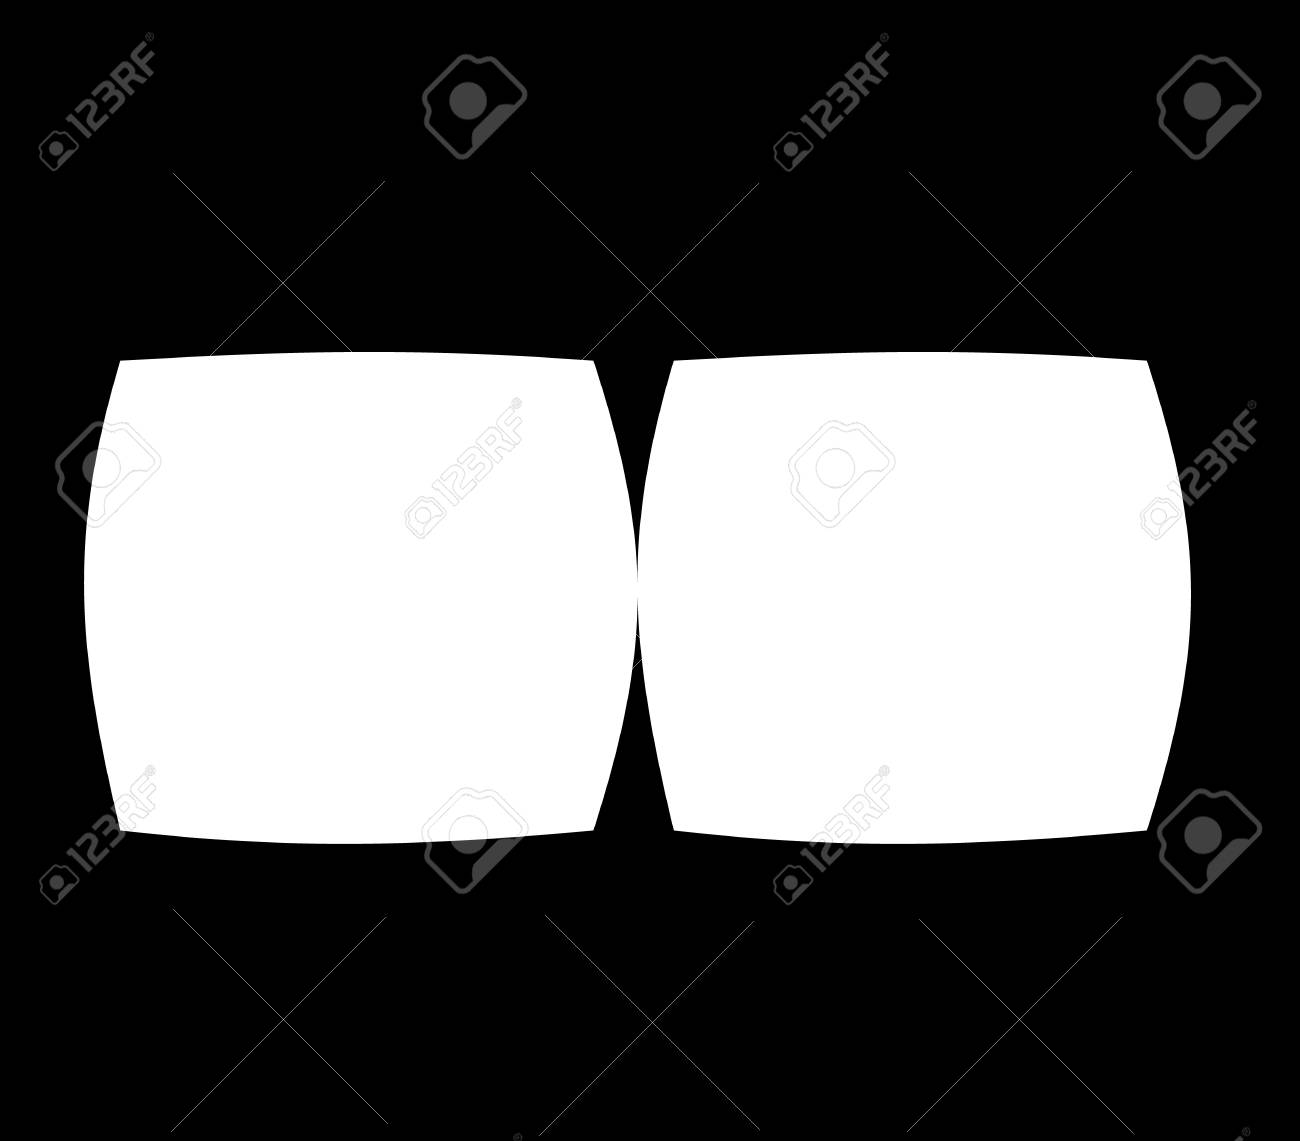 fd1ef11aa6 Virtual Reality Glasses Screen Vector Frame Template Royalty Free ...